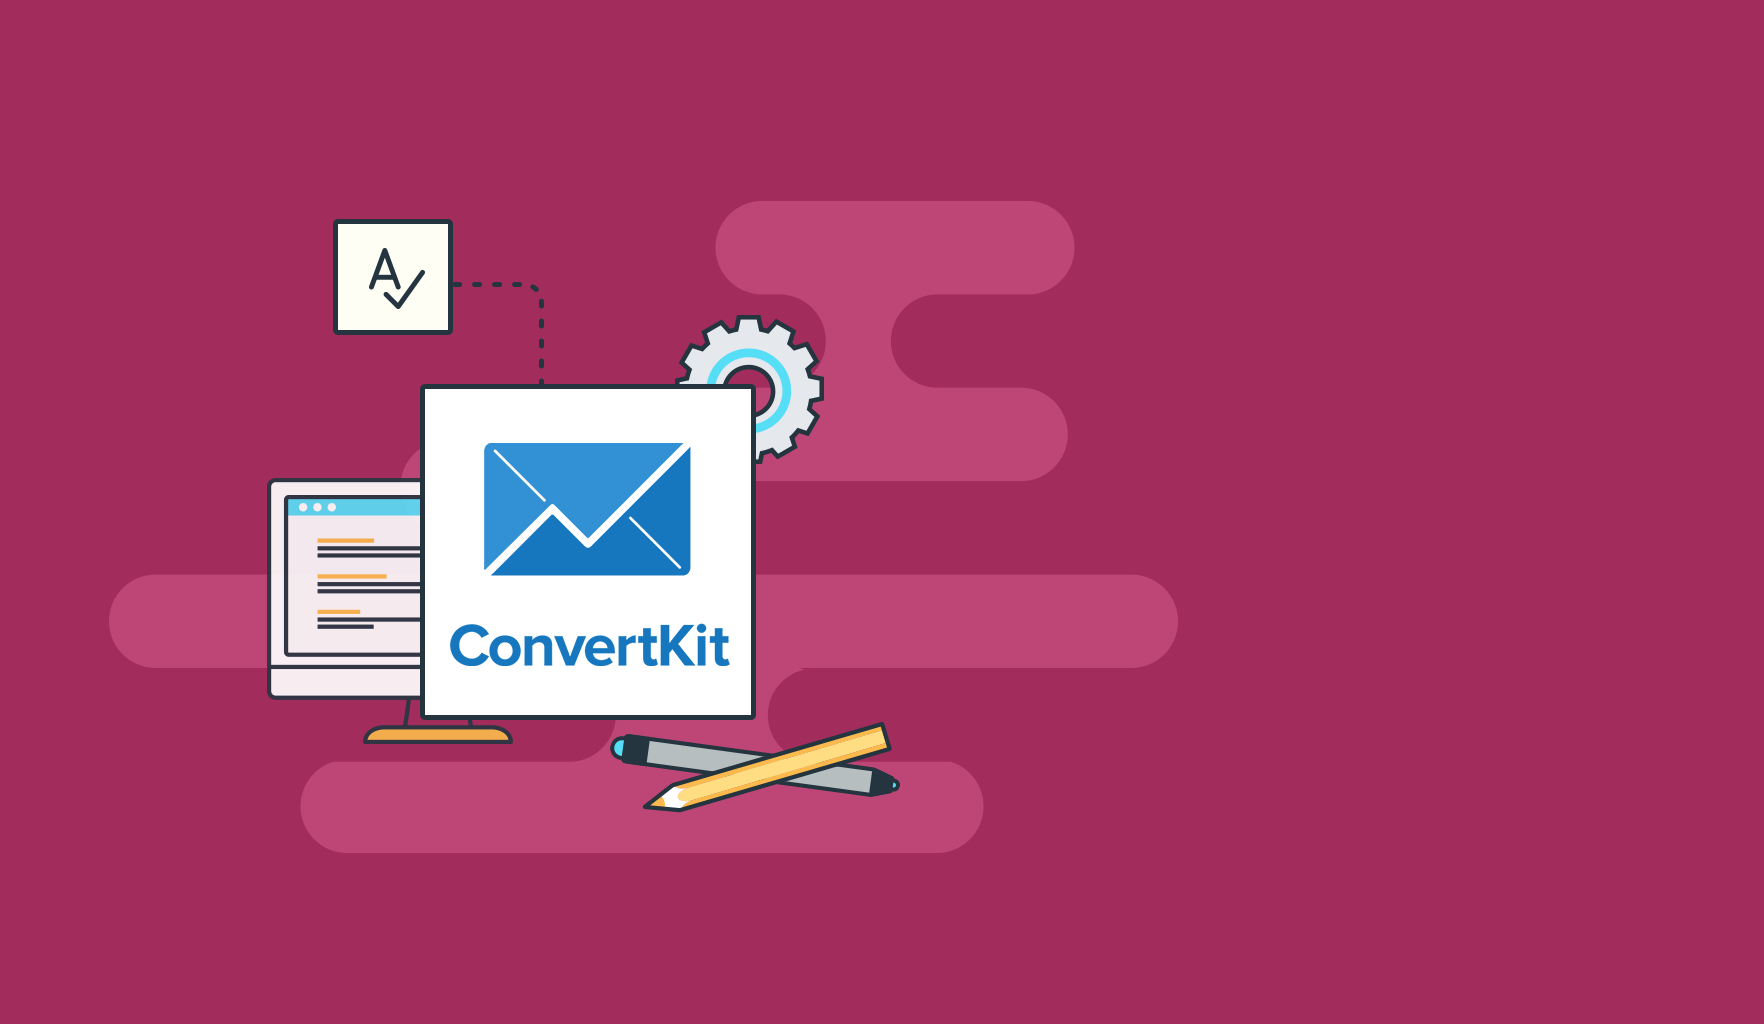 20% Off Online Voucher Code Printable Convertkit May